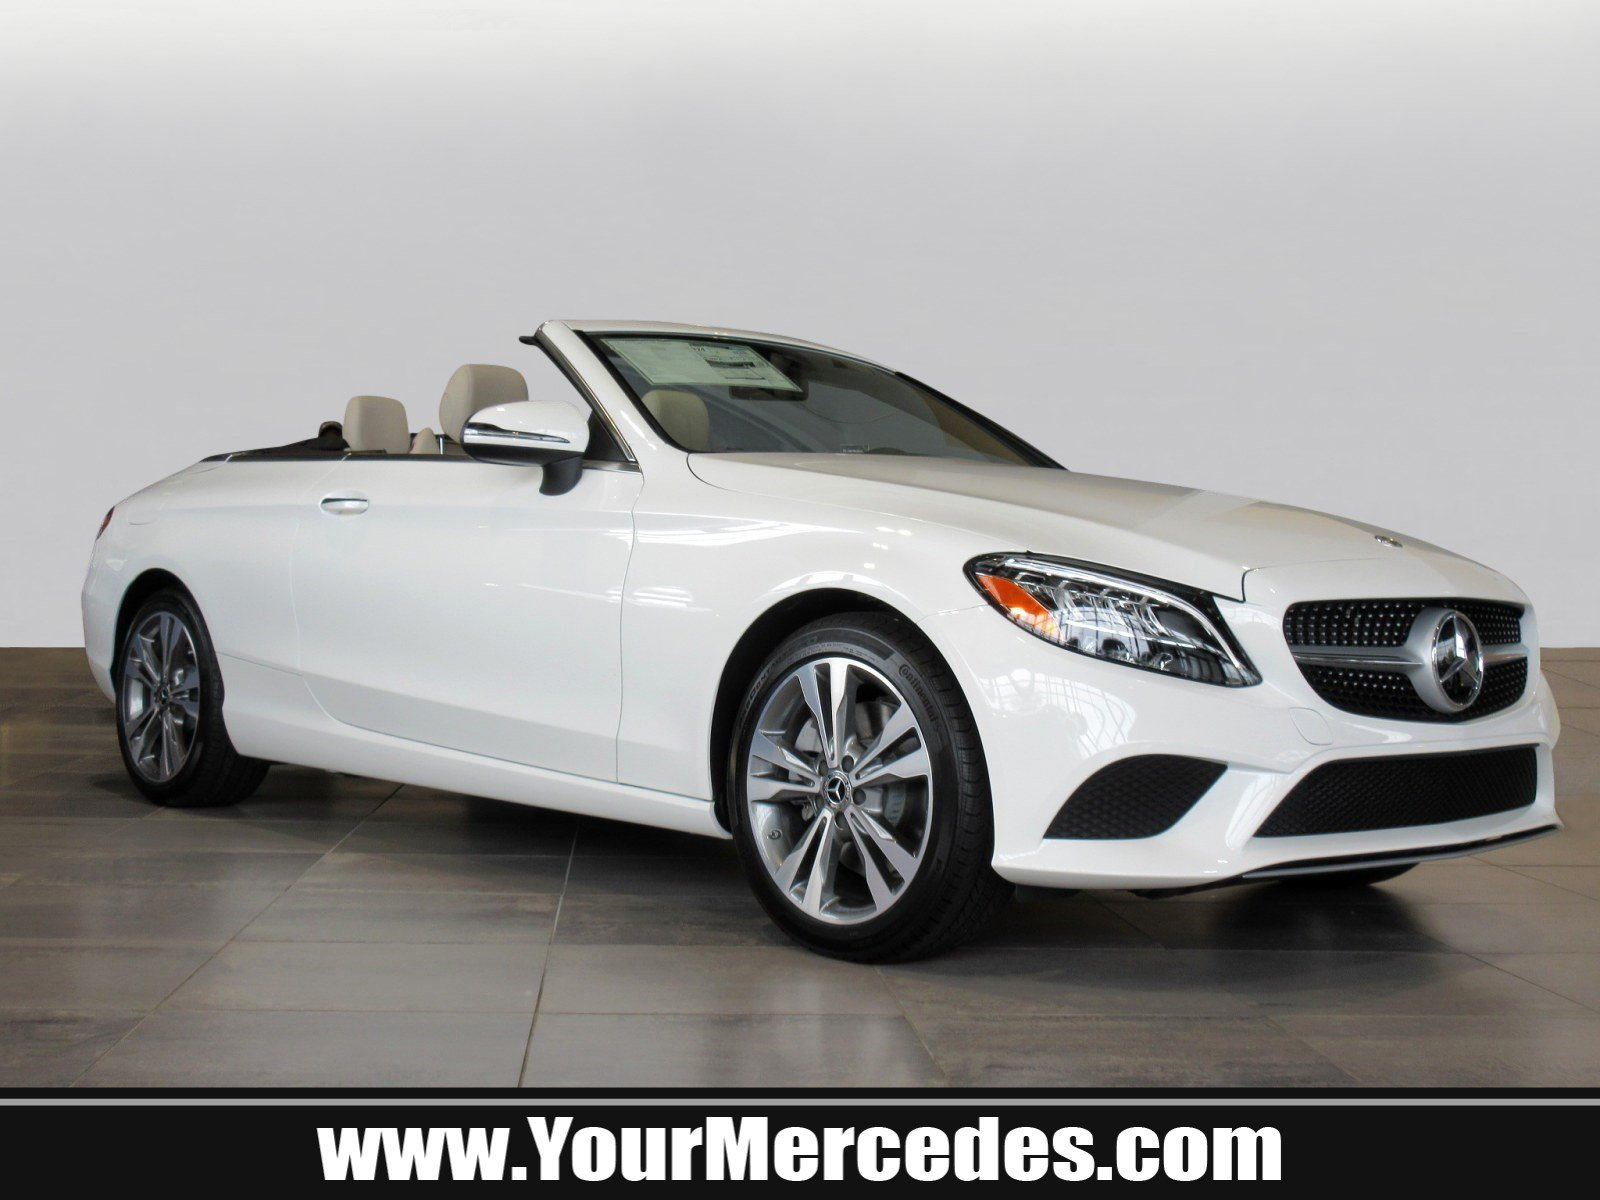 New 2019 Mercedes Benz C Class C 300 CABRIOLET in Egg Harbor